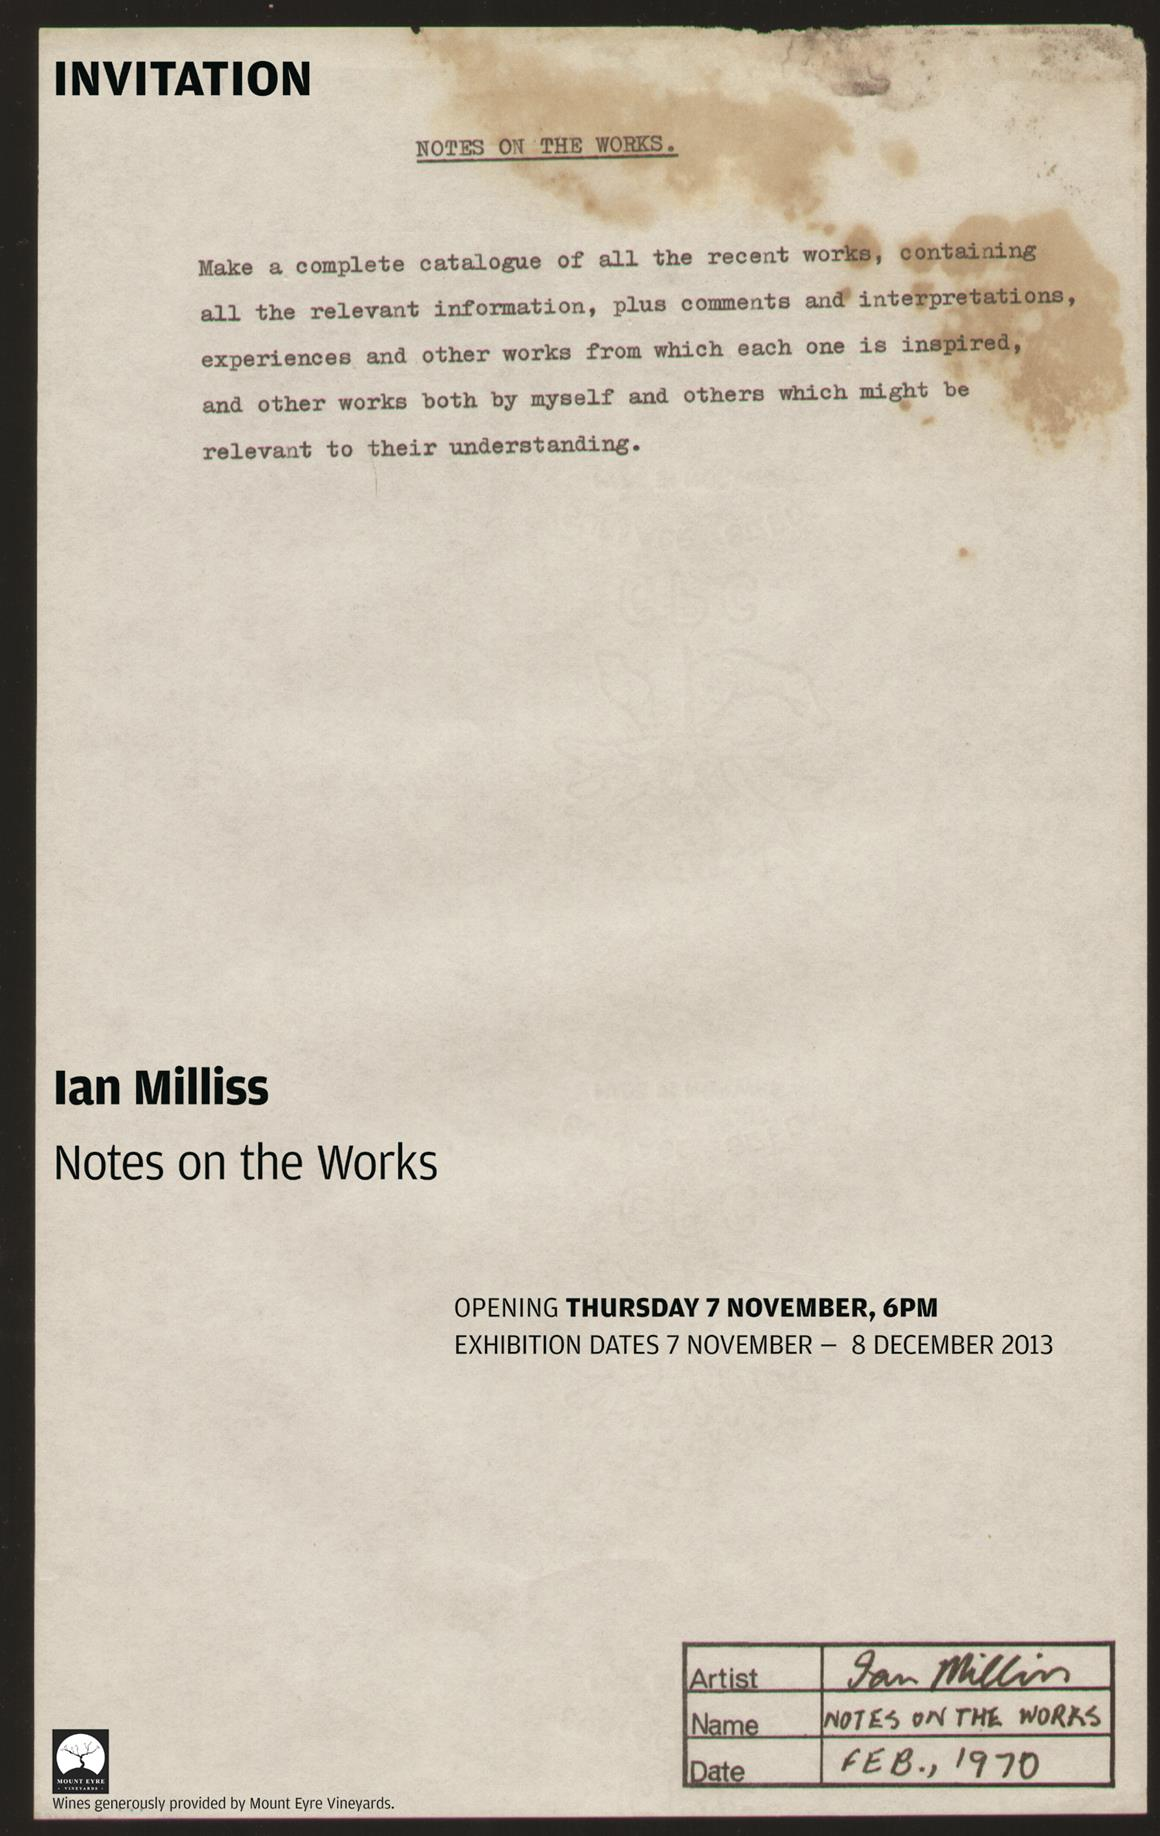 Invitation: Exhibition Opening, Ian Milliss 'Notes on the Works', Thursday 7 November, 6pm